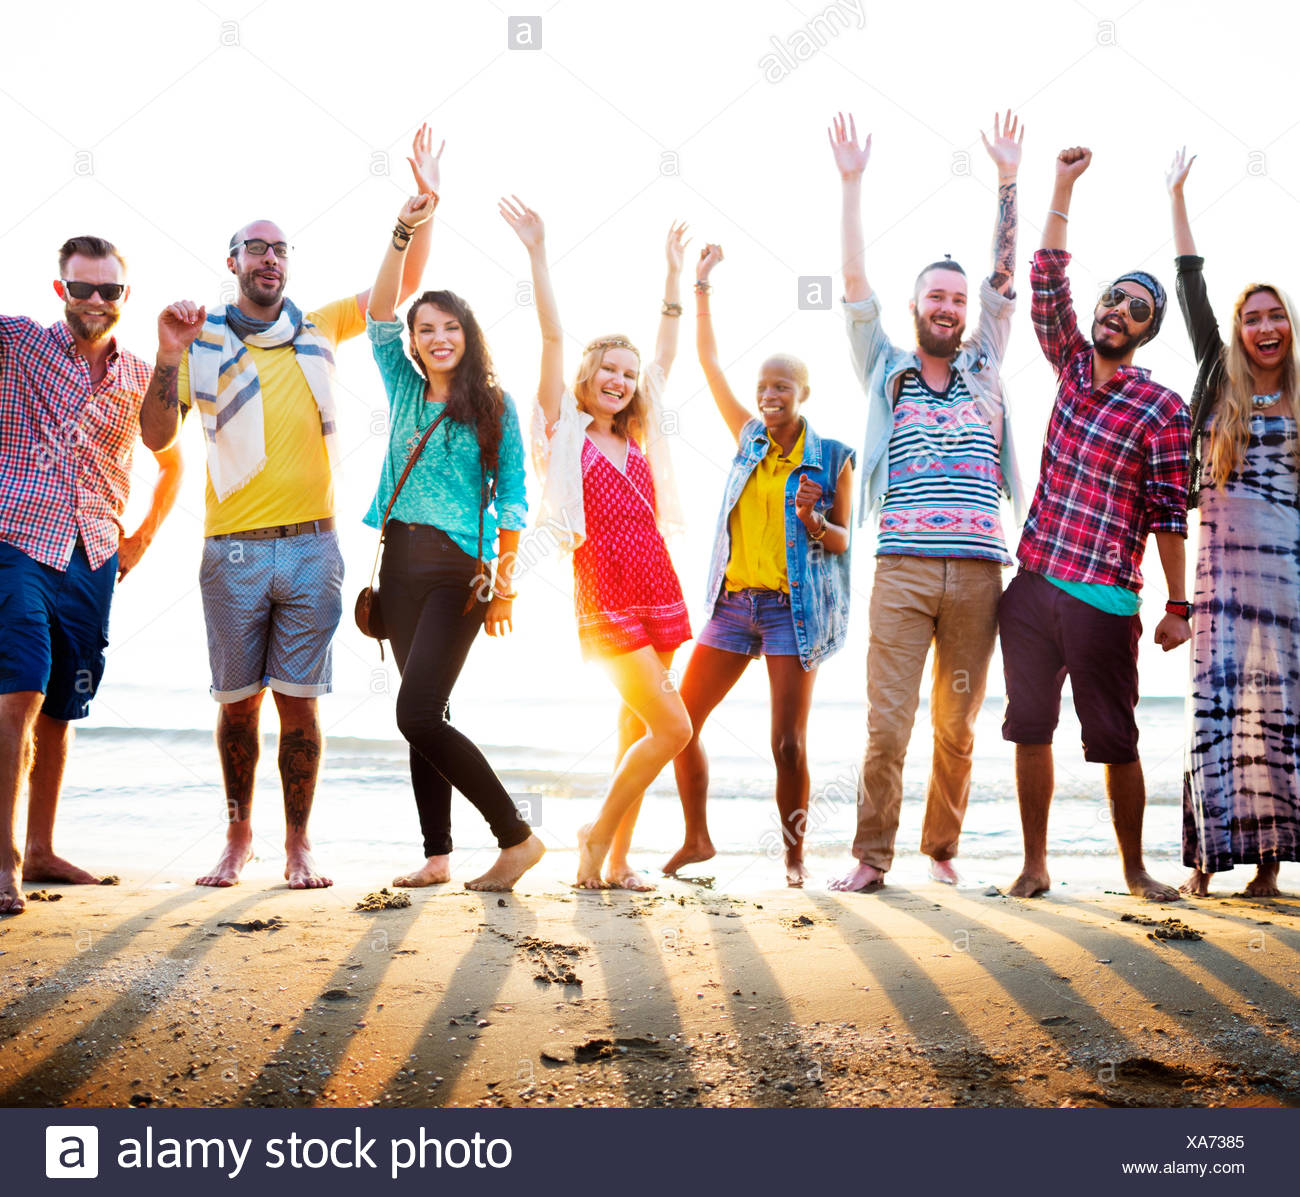 Teenagers Friends Beach Party Happiness Concept Stock Photo